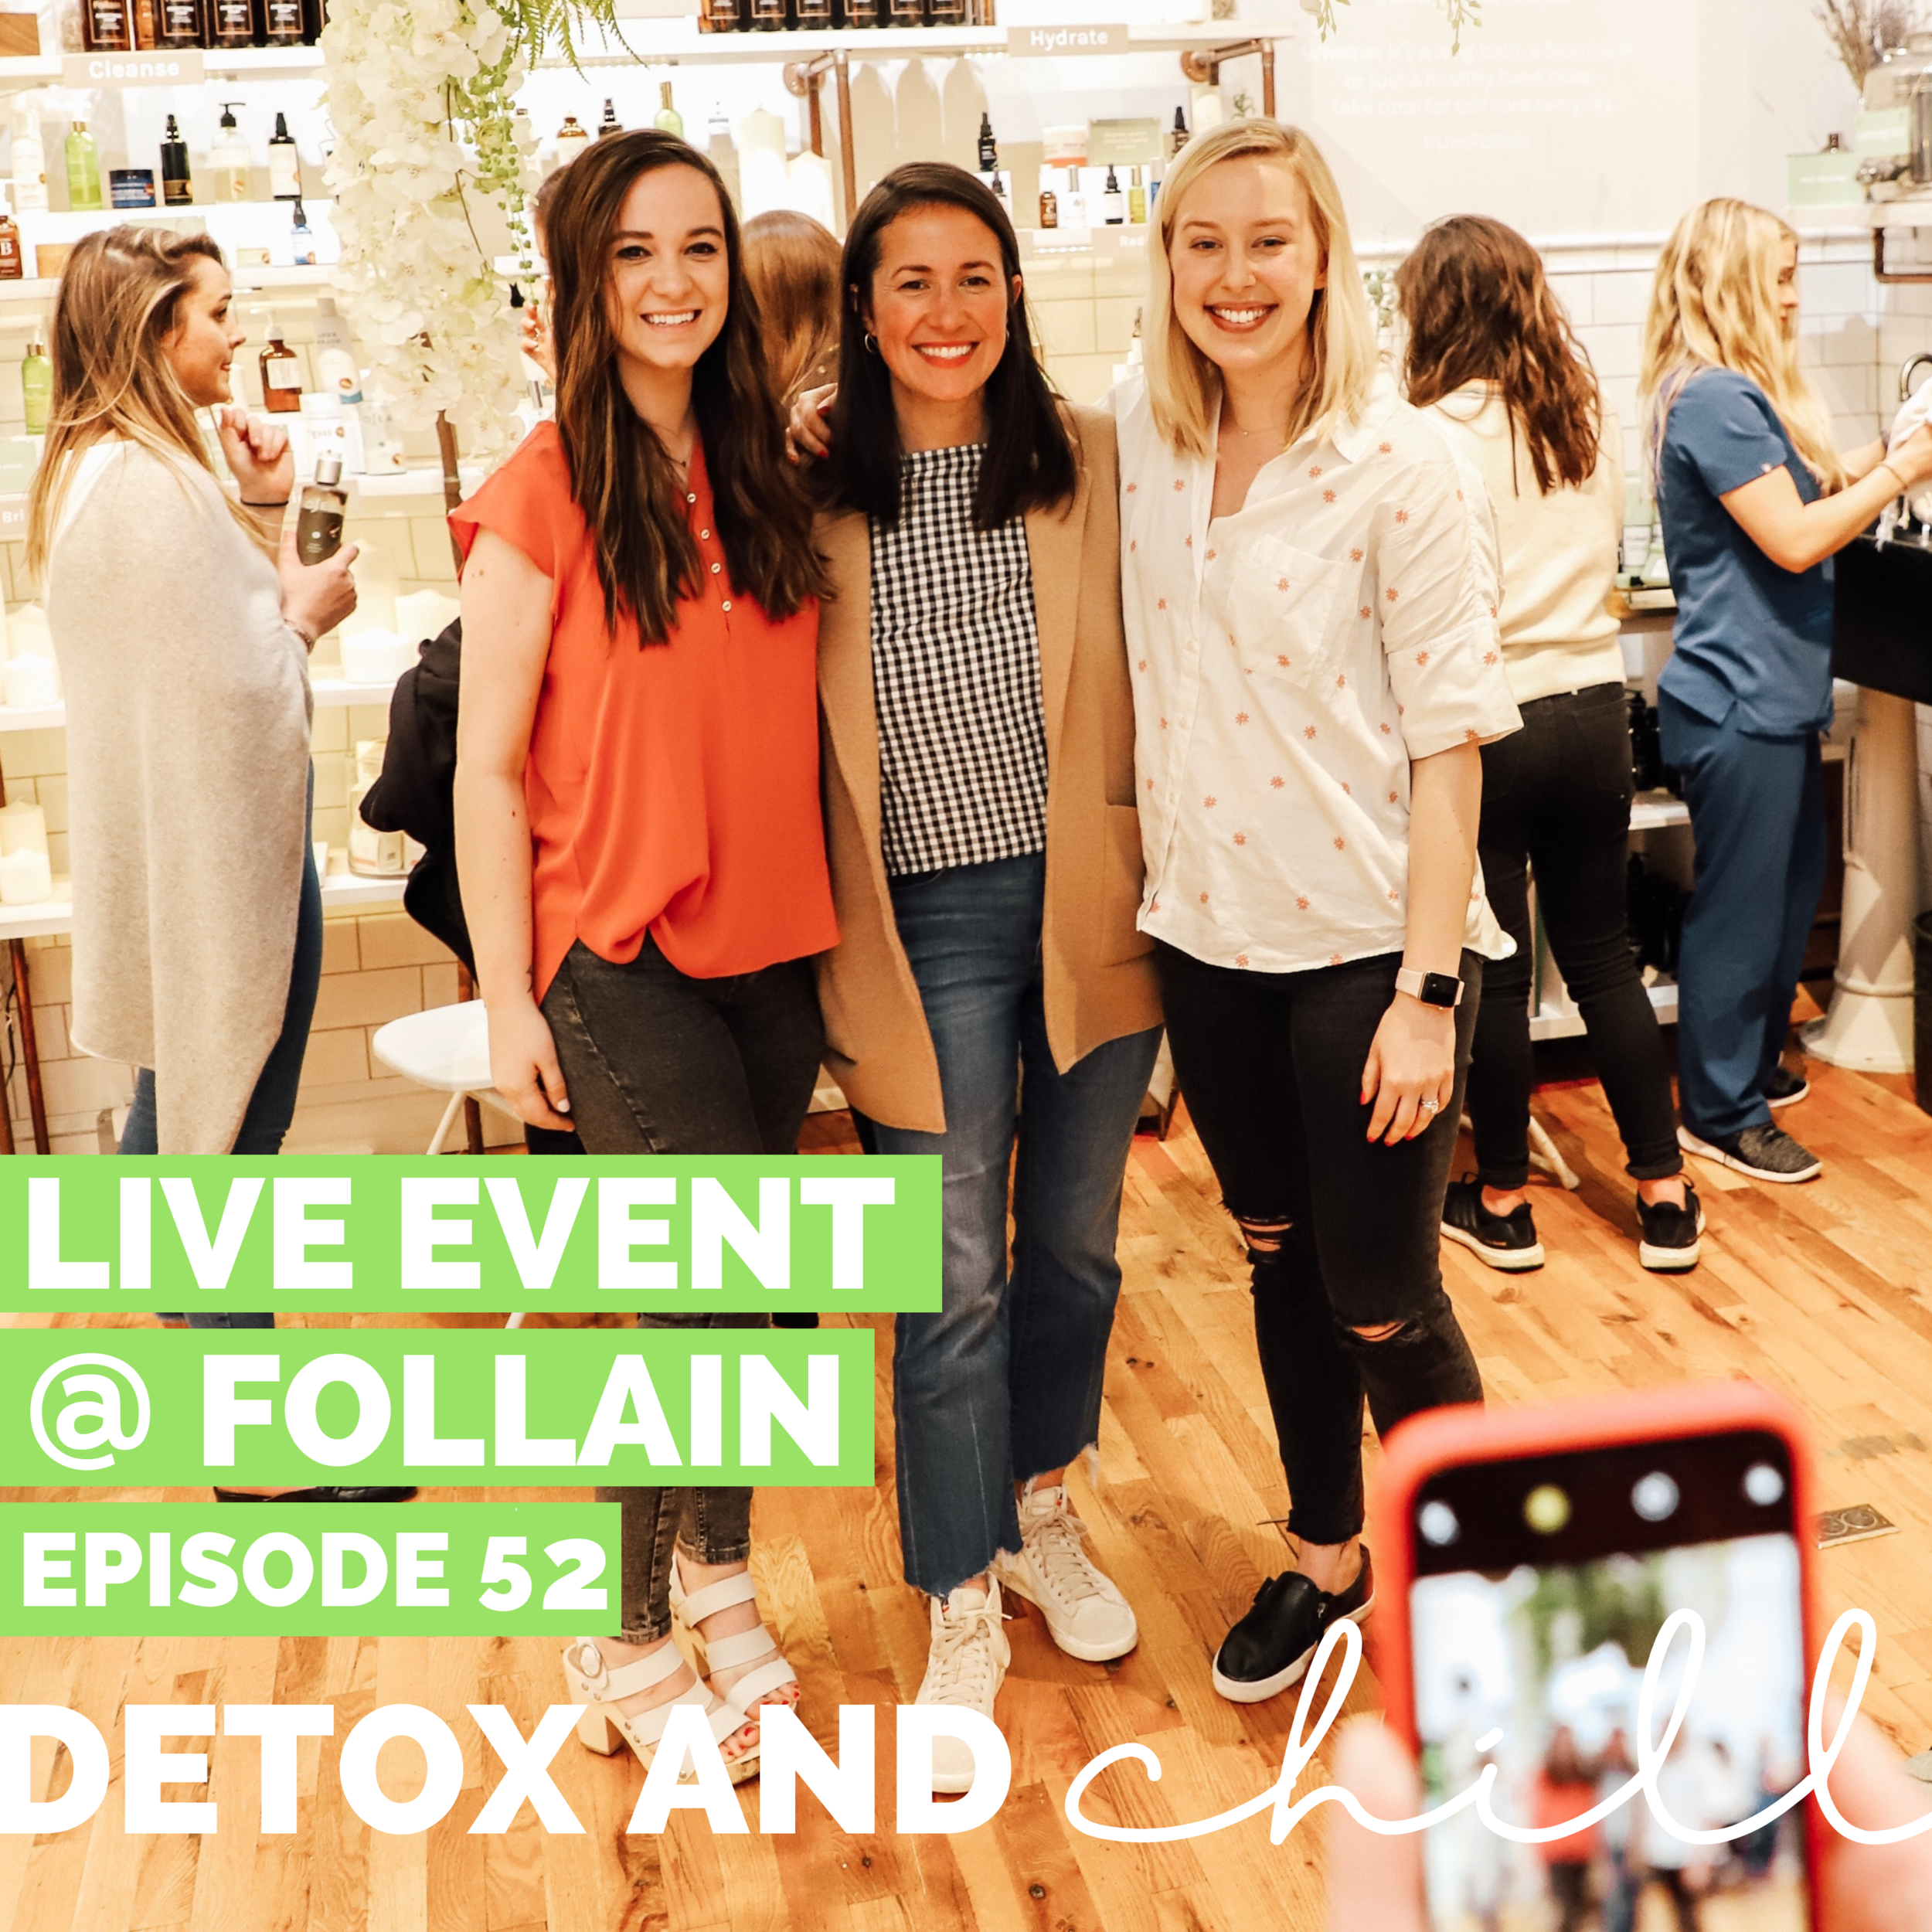 Episode #52: Live Event ft. Tara Foley // Founder & CEO of Follain // Saying Goodbye to Toxicity - To everyone who was able to stop by our event at the Follain storefront in Beacon Hill, THANK YOU! For anyone who didn't make it…good news! We have the live recording here for you to listen.Tara is someone who we look up to SO much as we build this podcast and make decisions for growth. If you listened to the first episode featuring Tara, we covered some new and different topics in this one. We talked about…->You gotta do the work and make the connections. Set up coffee meetings to learn more what other people do.->It's OK as an entrepreneur to have a safety net (a job that pays the bills, etc.) taking CALCULATED risks is what pays off big time.-> Fundraising is getting BETTER (slowly) for women. Tara had to answer a lot of questions about having kids when she was raising money for @follain...which def wouldn't have happened if she was a dude.-> Follain's own line is amazing and expanding! We loveeee the essential oils for our diffuser.-> It's our responsibility to figure out how to distill wellness to other non-coast areas, everyone deserves access to this information!-> Her non-negotiable products…like the Follain hand soap that she brings with her everywhere! This was honestly a lightbulb moment…a lot of the products available to us at work aren't clean or nontoxic.We also had some INCREDIBLE questions, so stay tuned to hear those and Tara's answers!We hope you enjoyed and would love to hear what you thought.We are so proud and excited about this episode and are so excited to hear what you think. We'd love to continue this conversation in our Facebook group and on Instagram. Our Facebook group is a safe space for anyone who joins, so don't forget to check us out there. Just search *SUPER EXLUSIVE* Detox & Chill Podcast Group. OR, click HERE to go right to that page! As always, don't forget to follow along with us on Instagram (@detoxandchillpodcast) and join our Facebook group. We love you!Xoxo,Meg & Beck